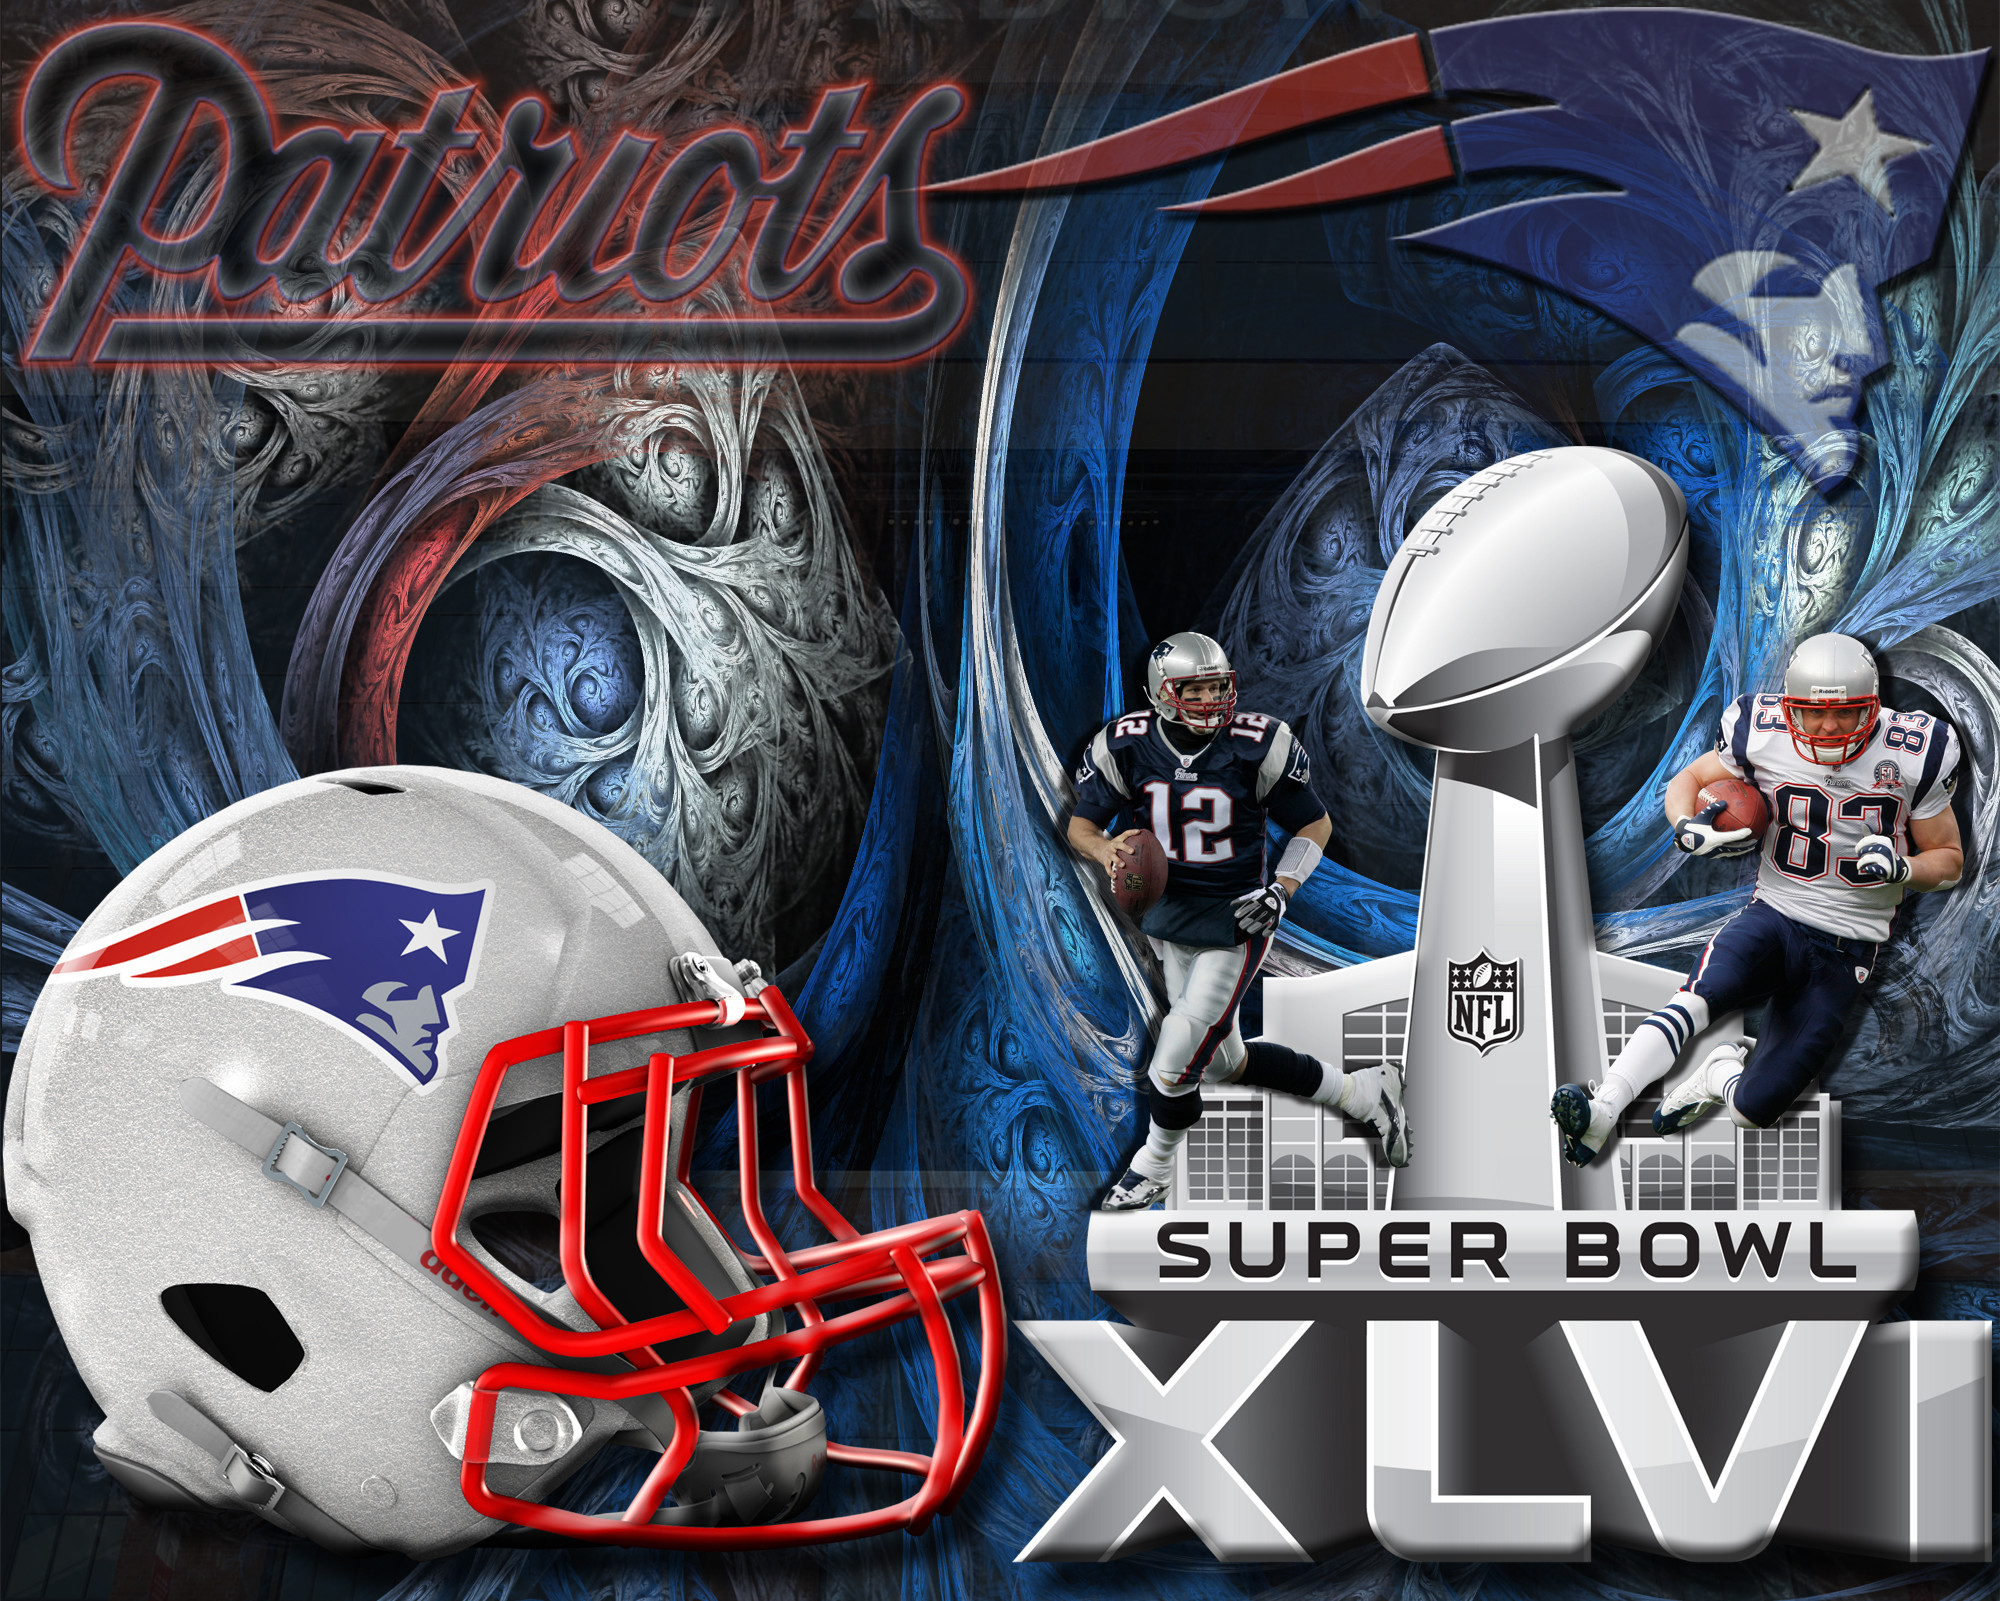 2000x1601 Wallpapers By Wicked Shadows: New England Patriots Super Bowl .